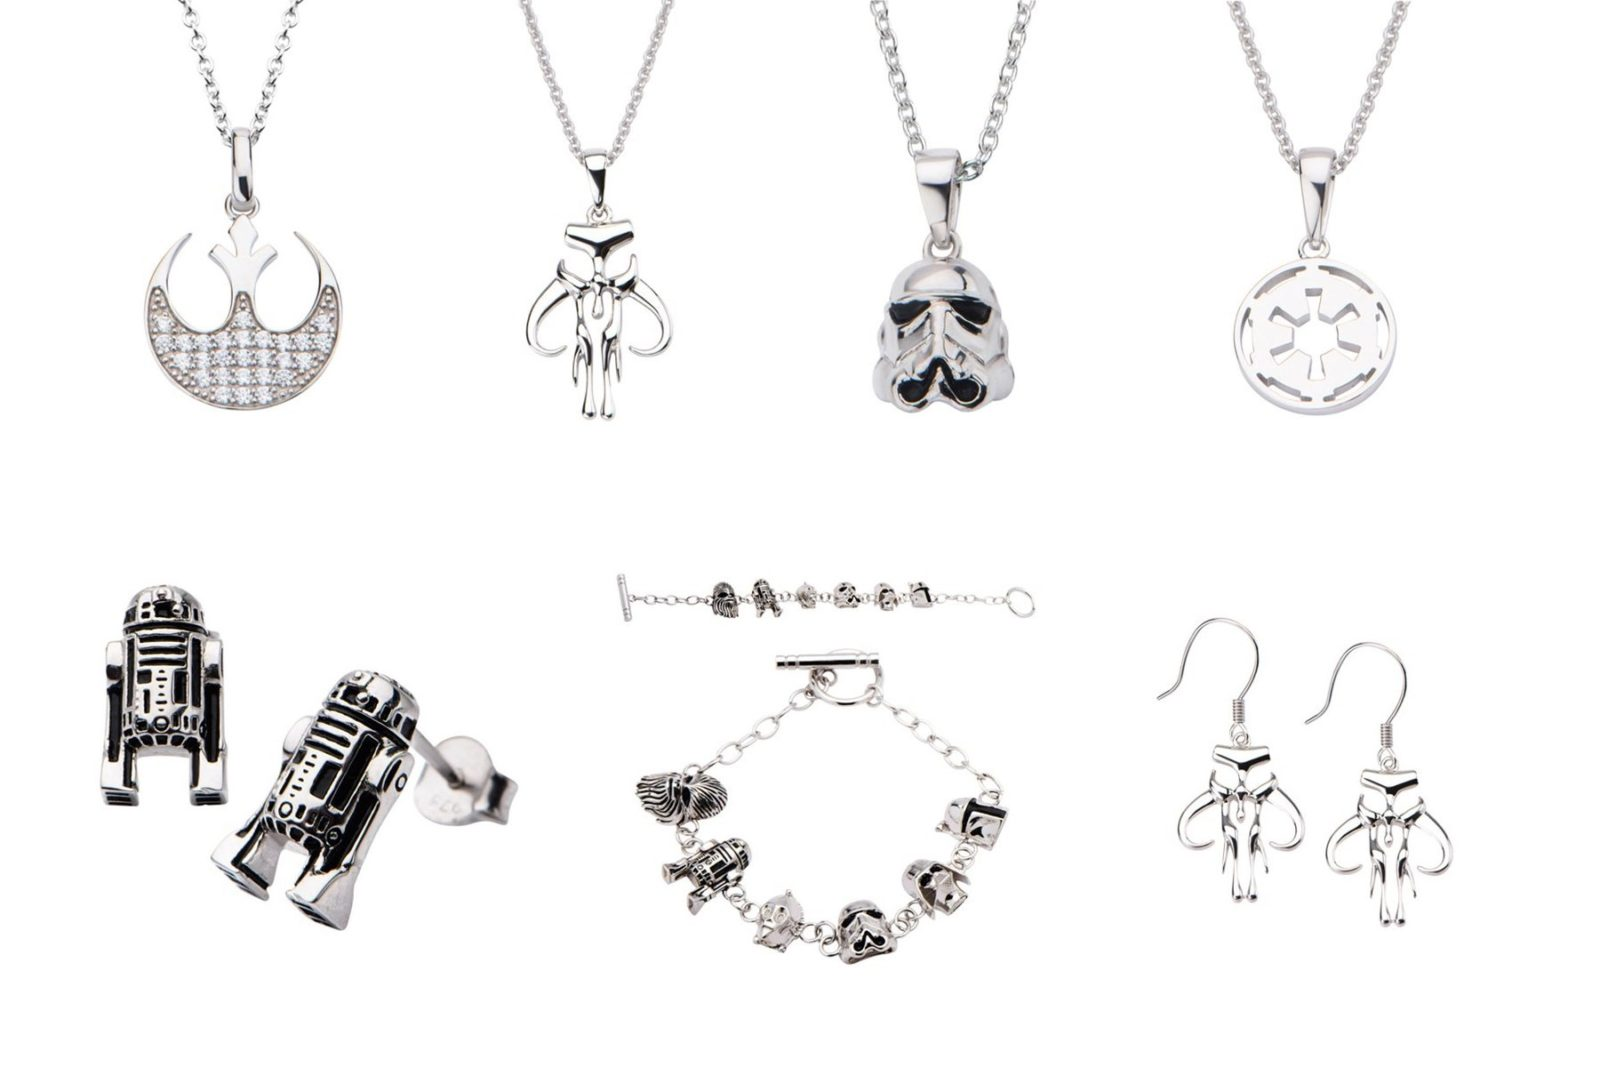 Entertainment Earth - Body Vibe x Star Wars sterling silver jewelry